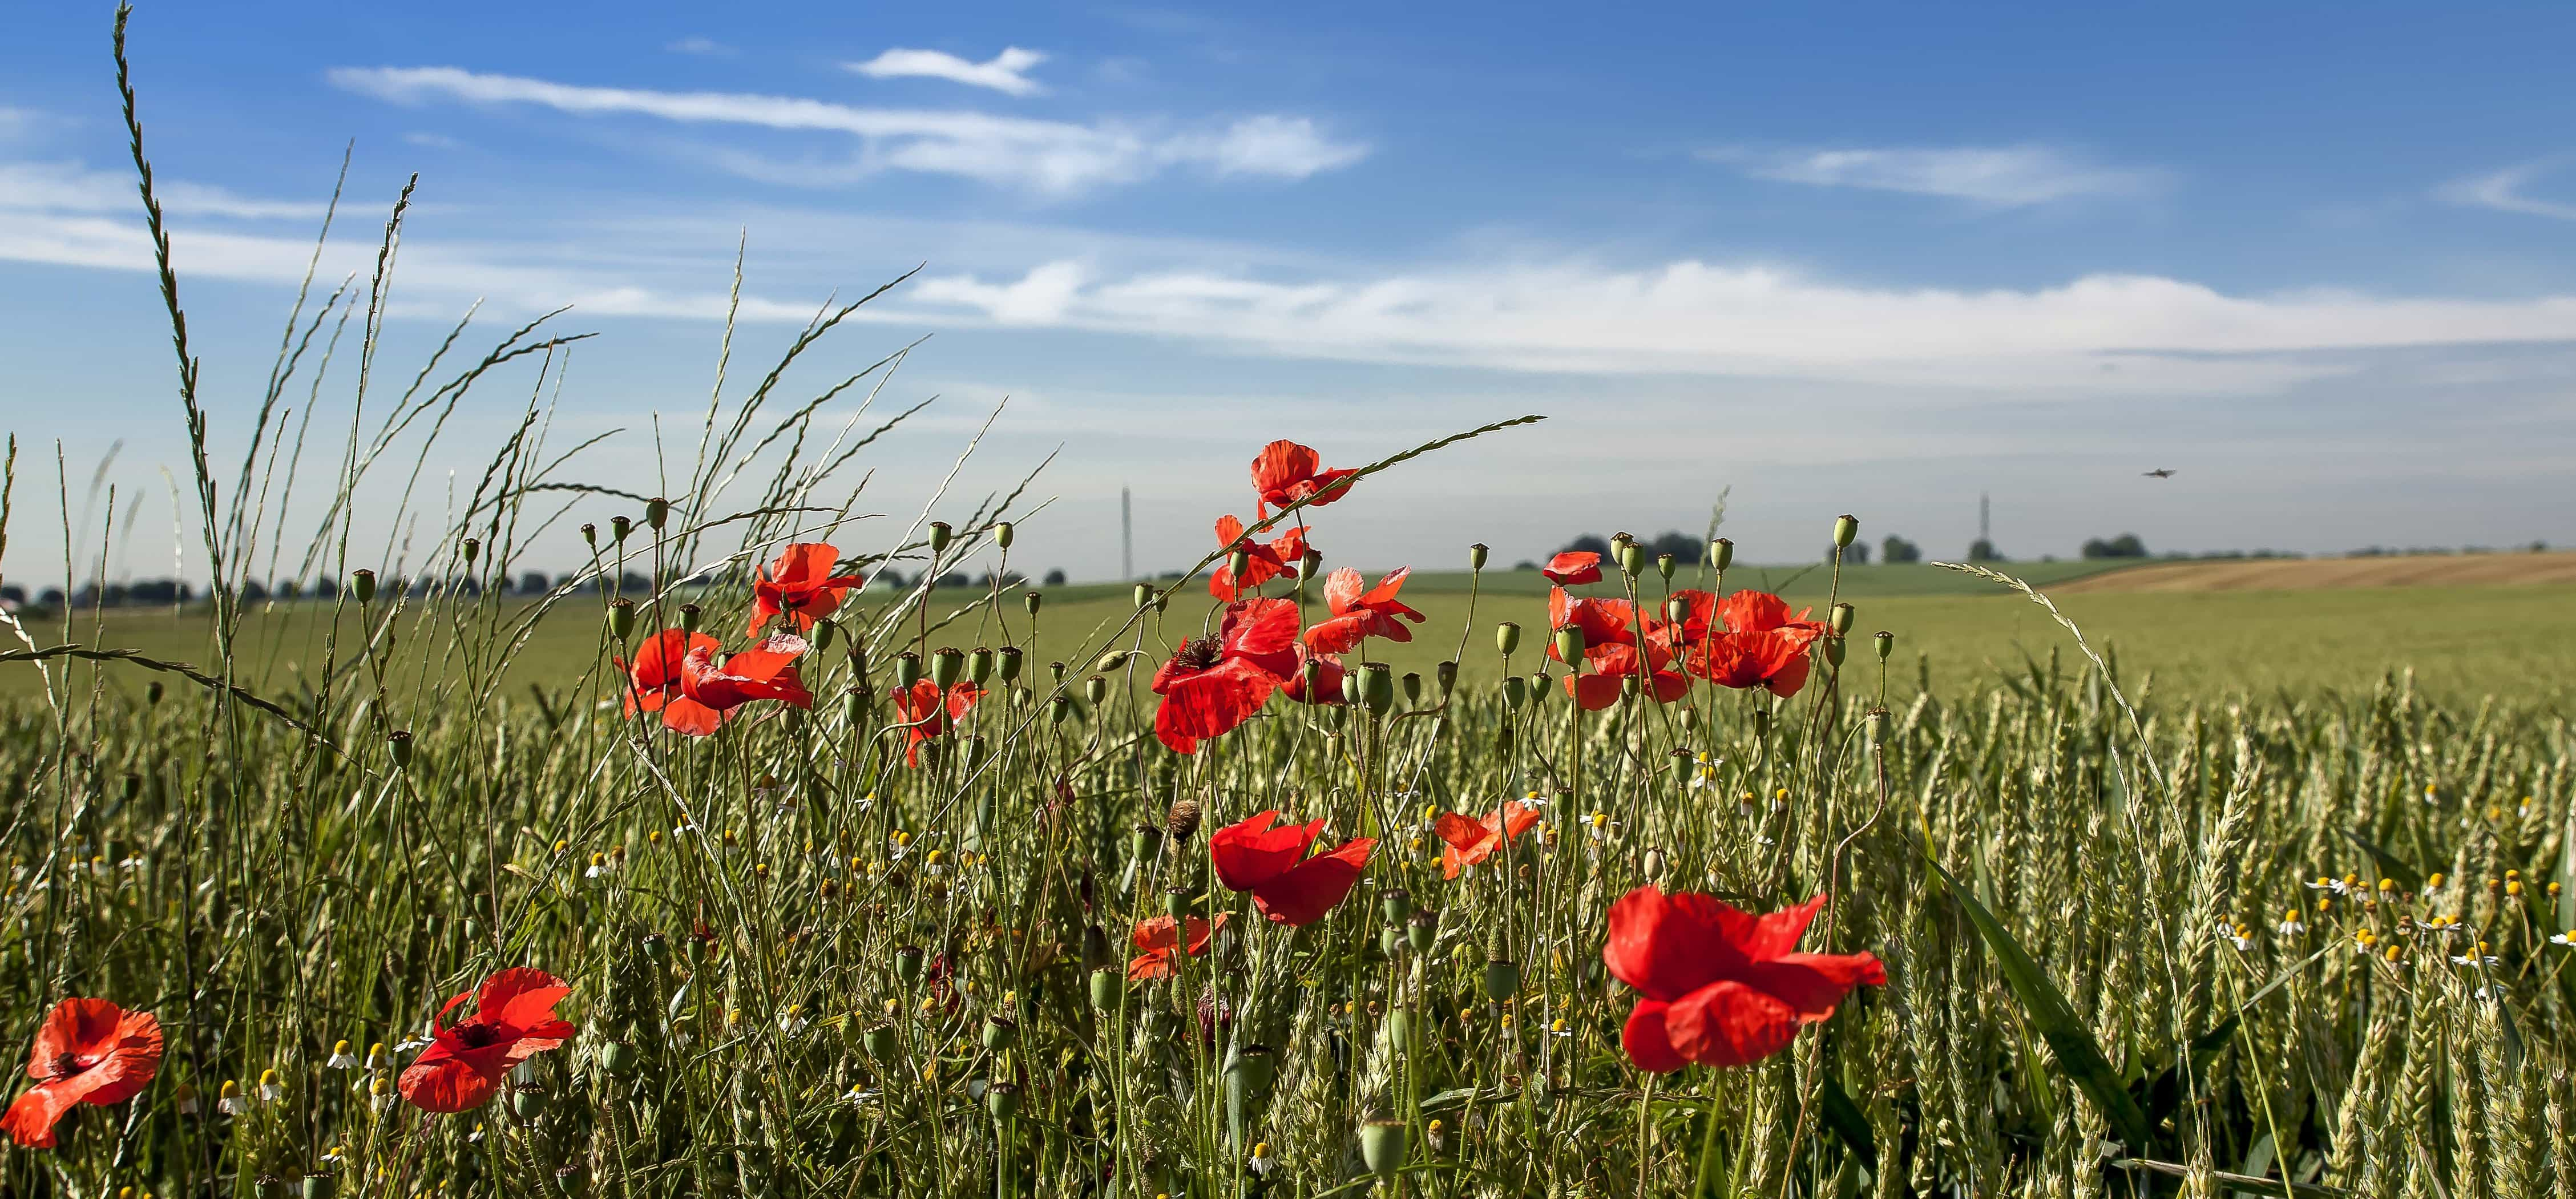 Free picture: summer, countryside, nature, grass, flower, poppy, field